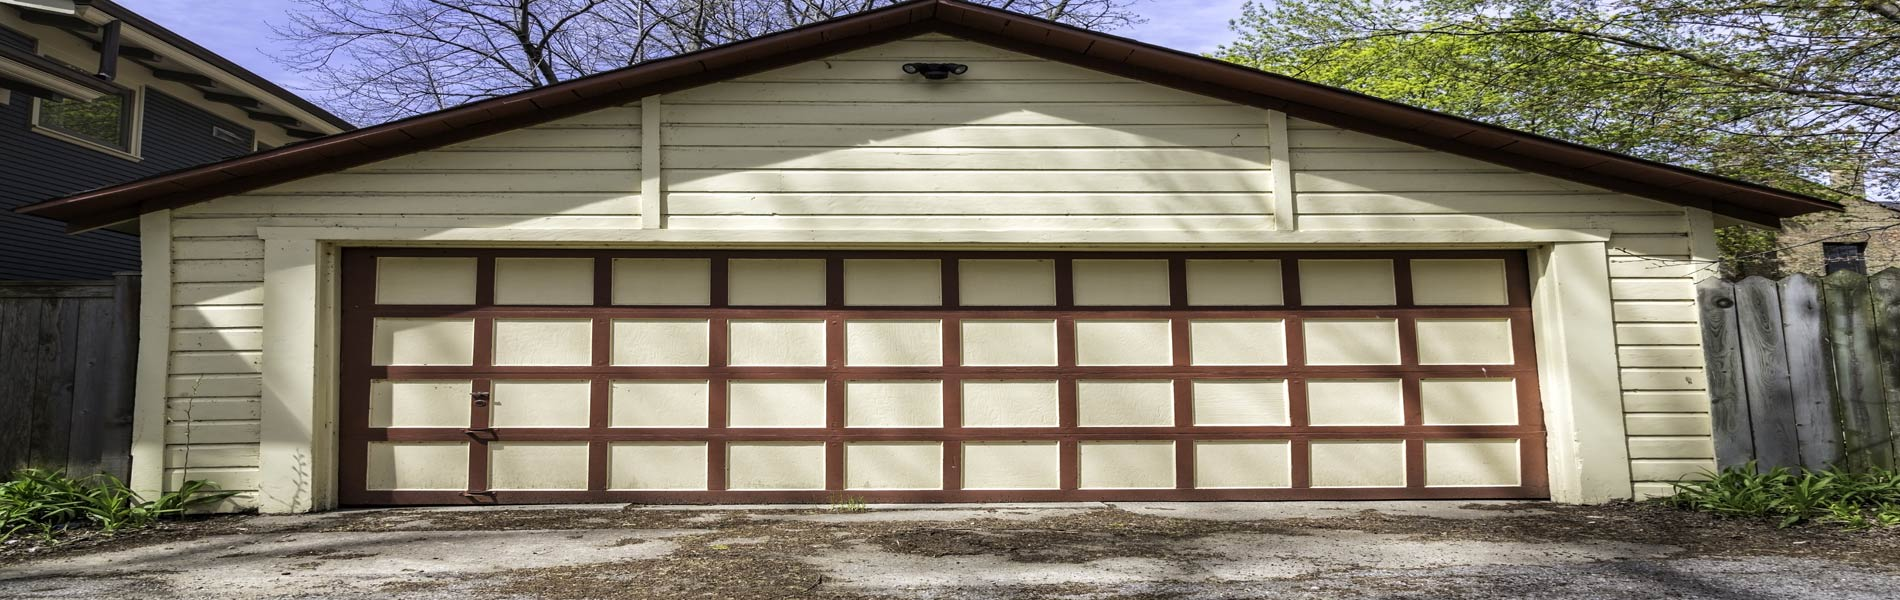 HighTech Garage Doors, Portland, OR 503-342-4390